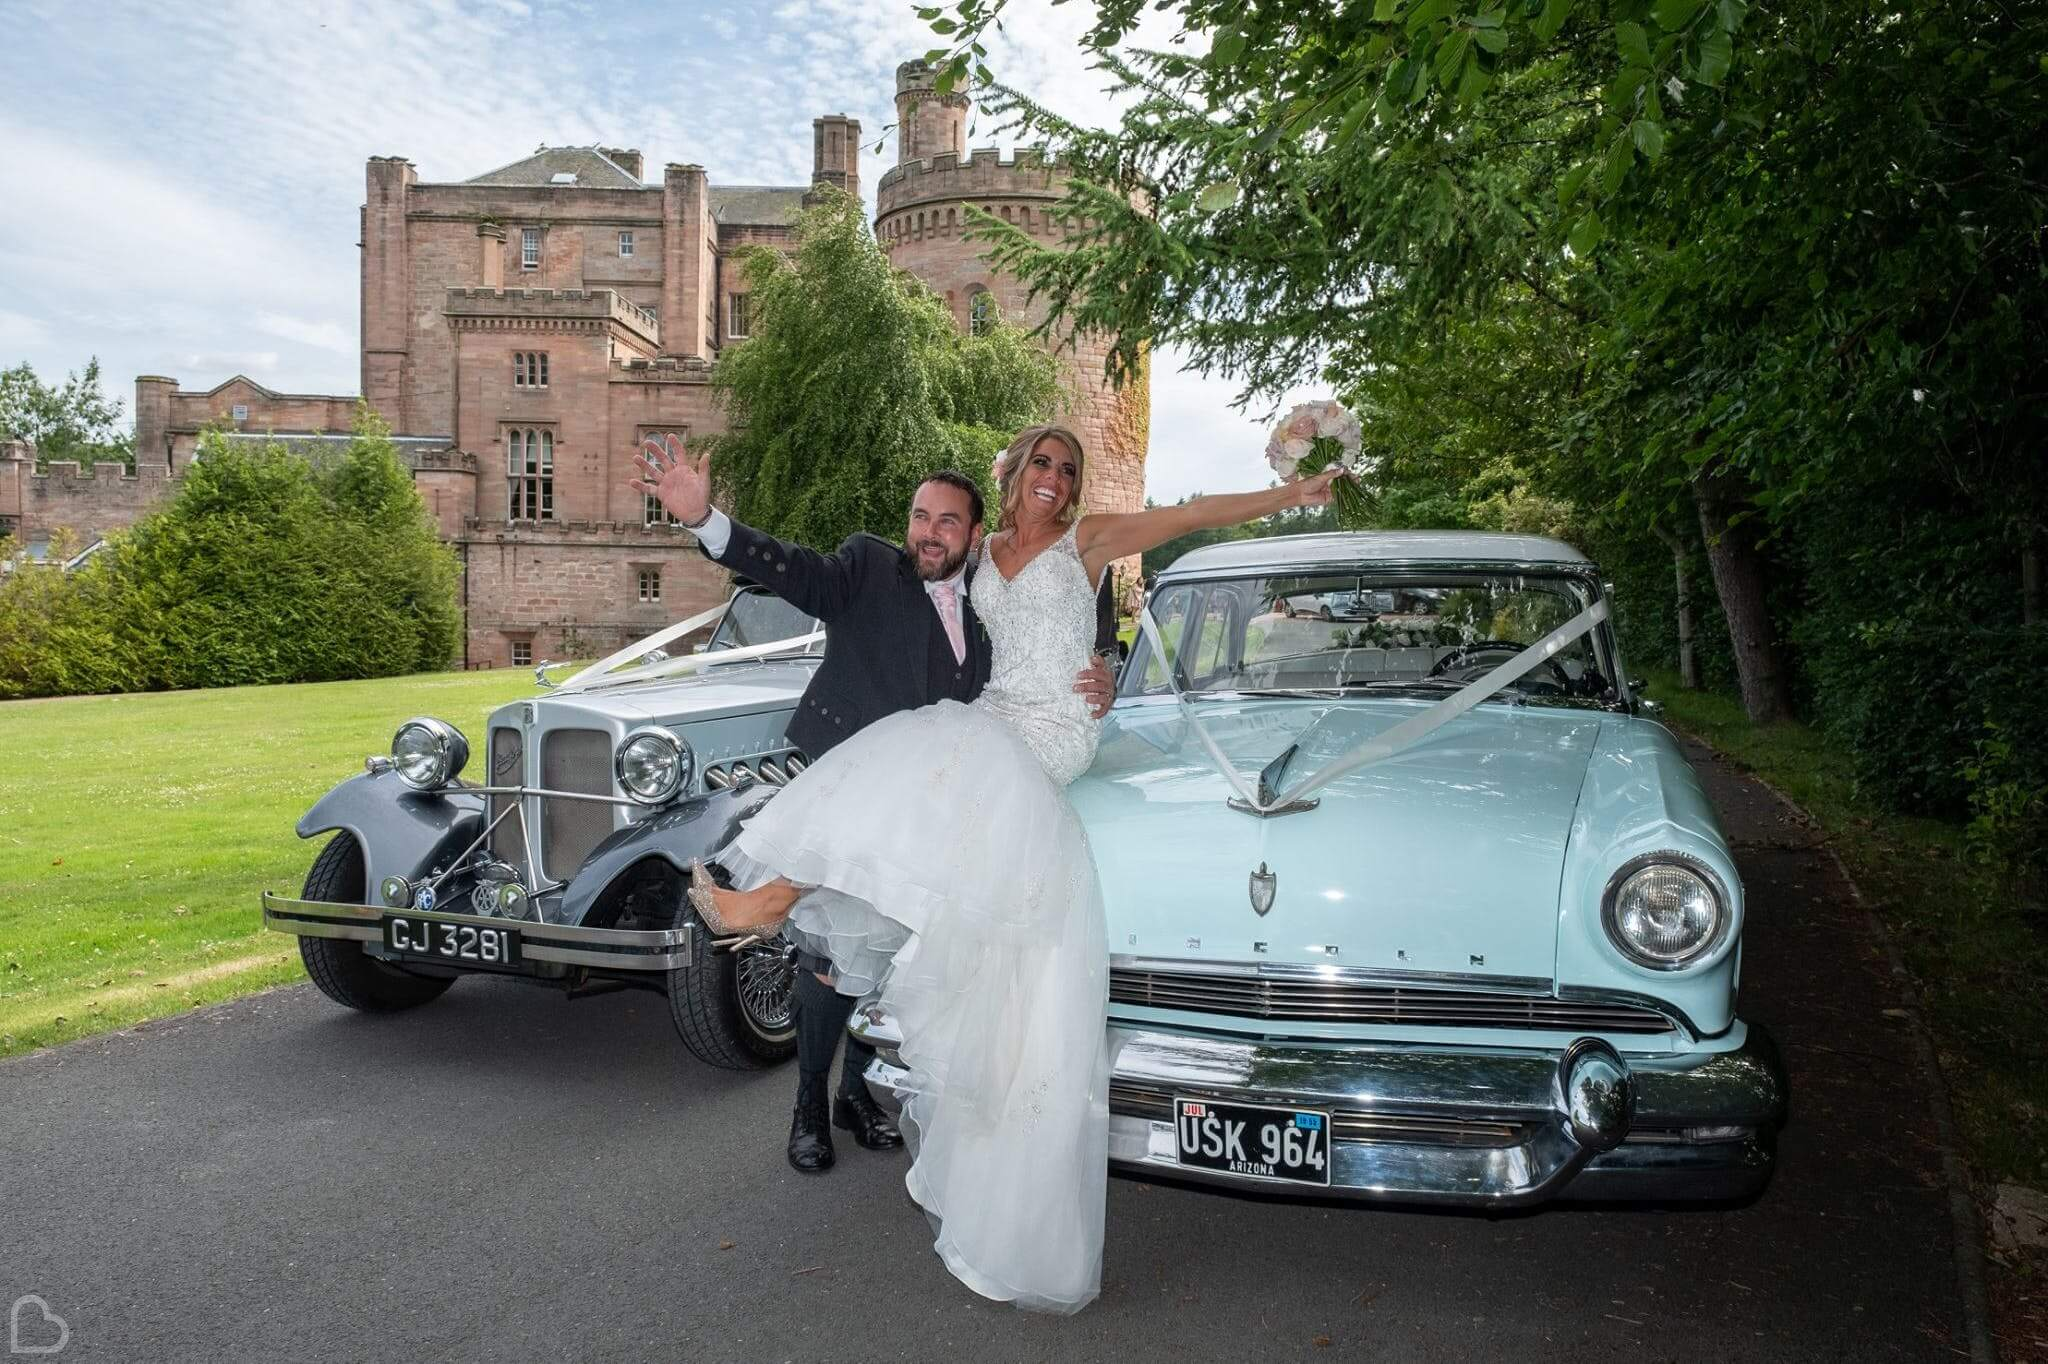 Newlyweds pose on their antique cars, in front of Dalhousie Castle.